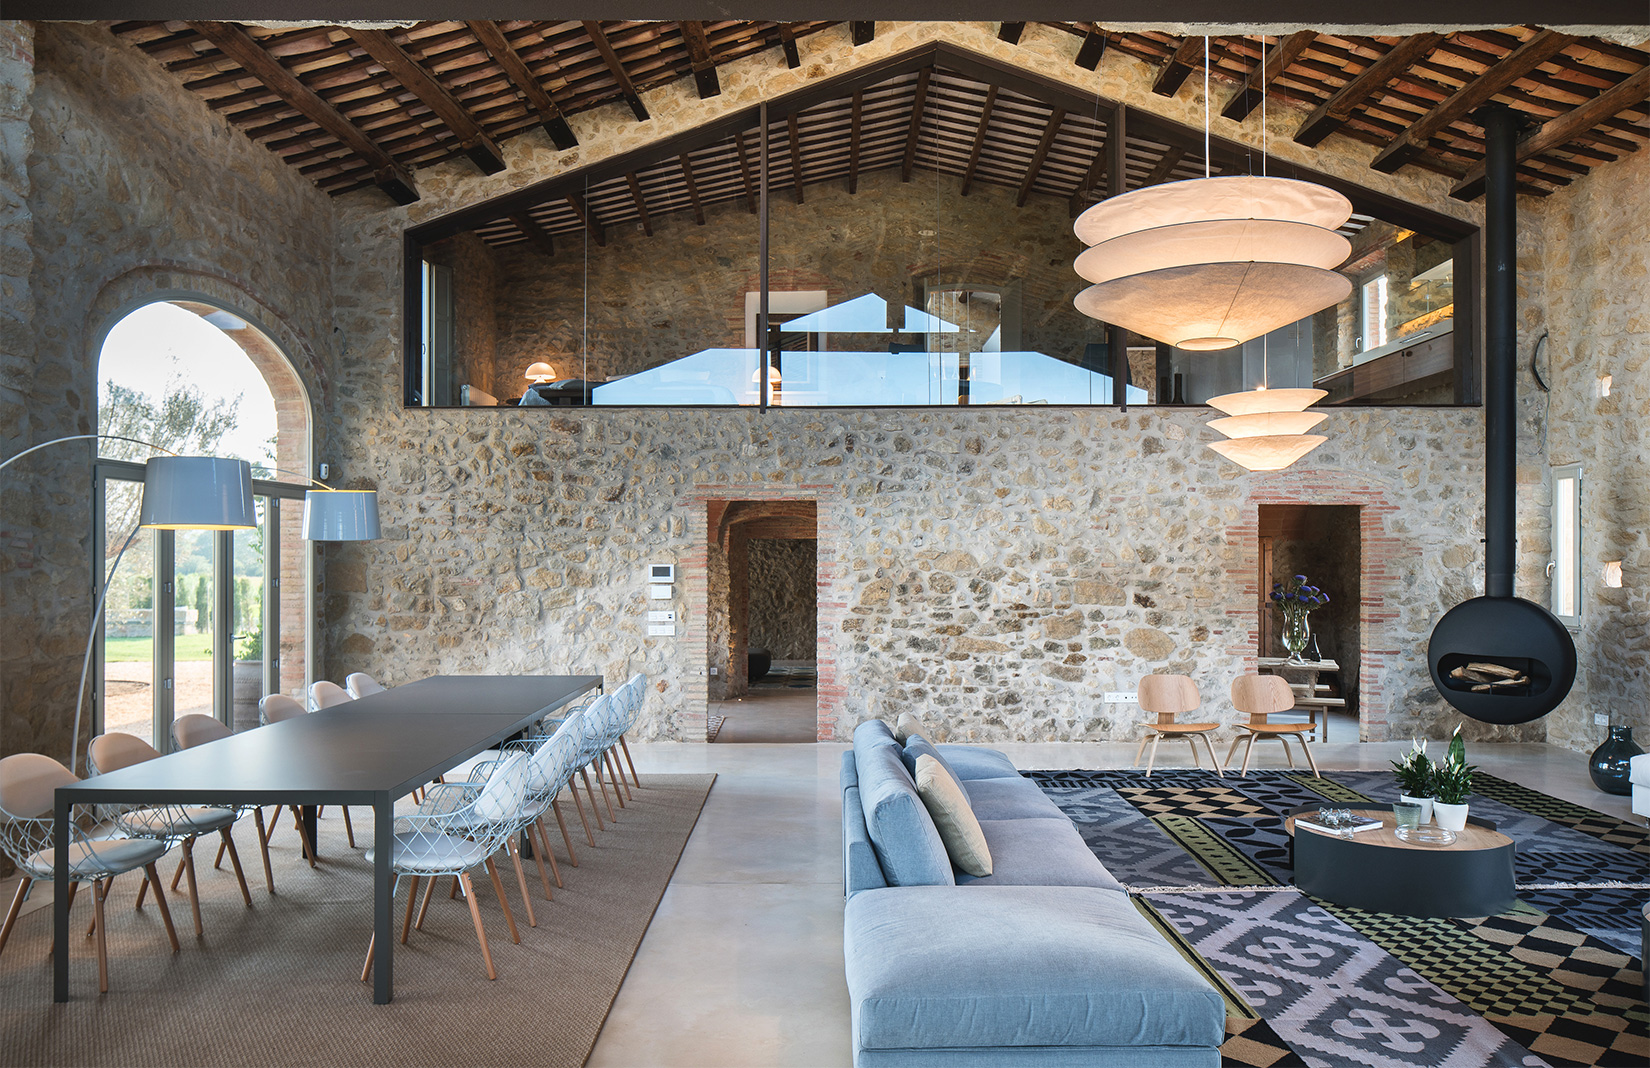 Property of the week a restored masia in girona spain - Masias en girona ...